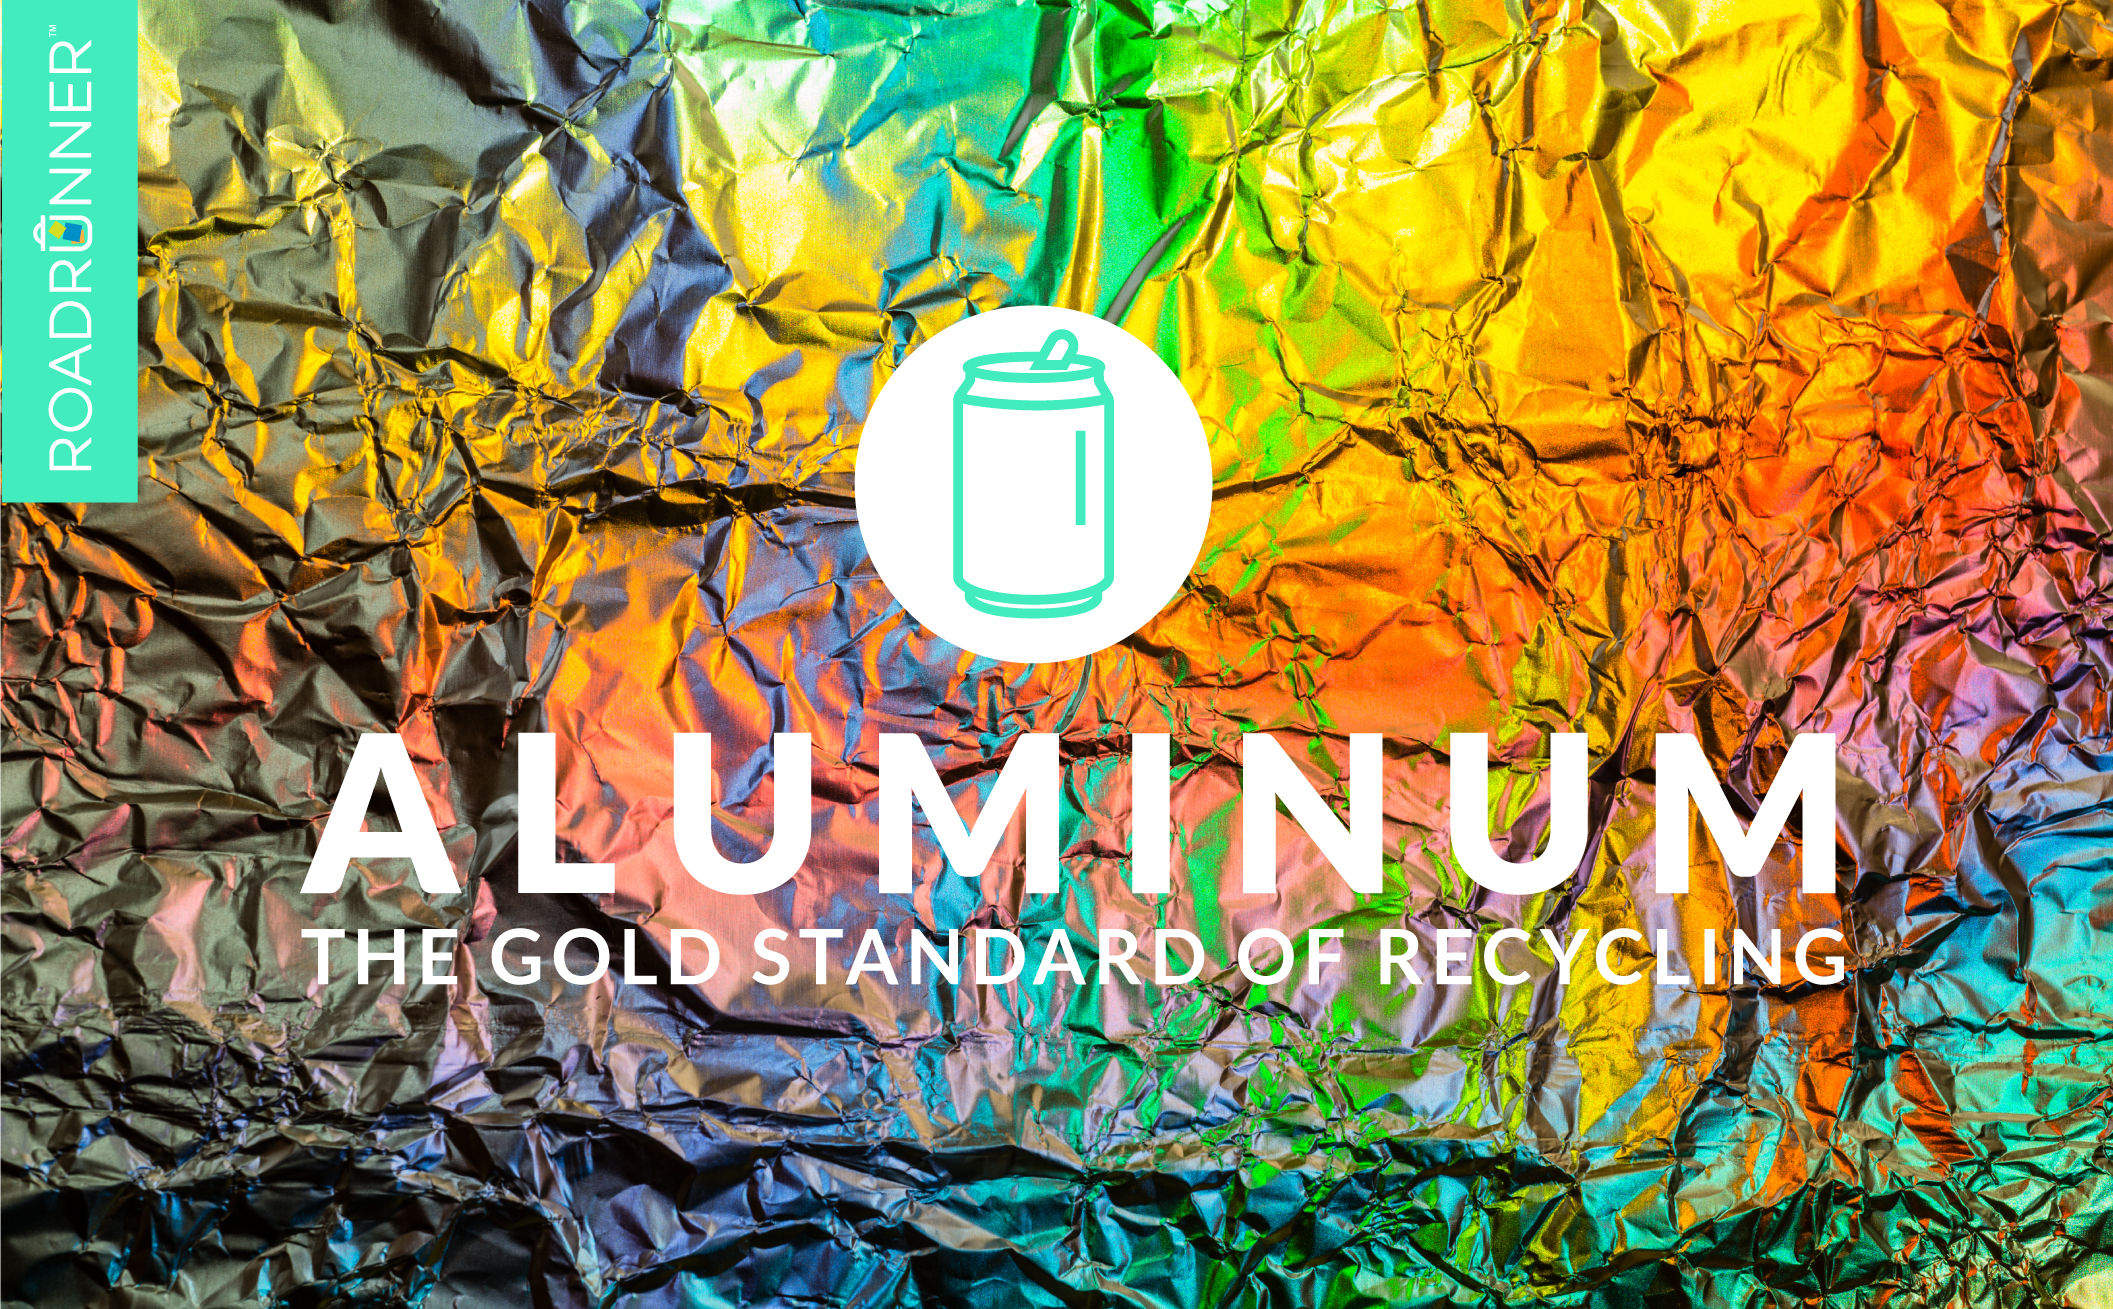 Why Are Recycled Aluminum Cans So Valuable?